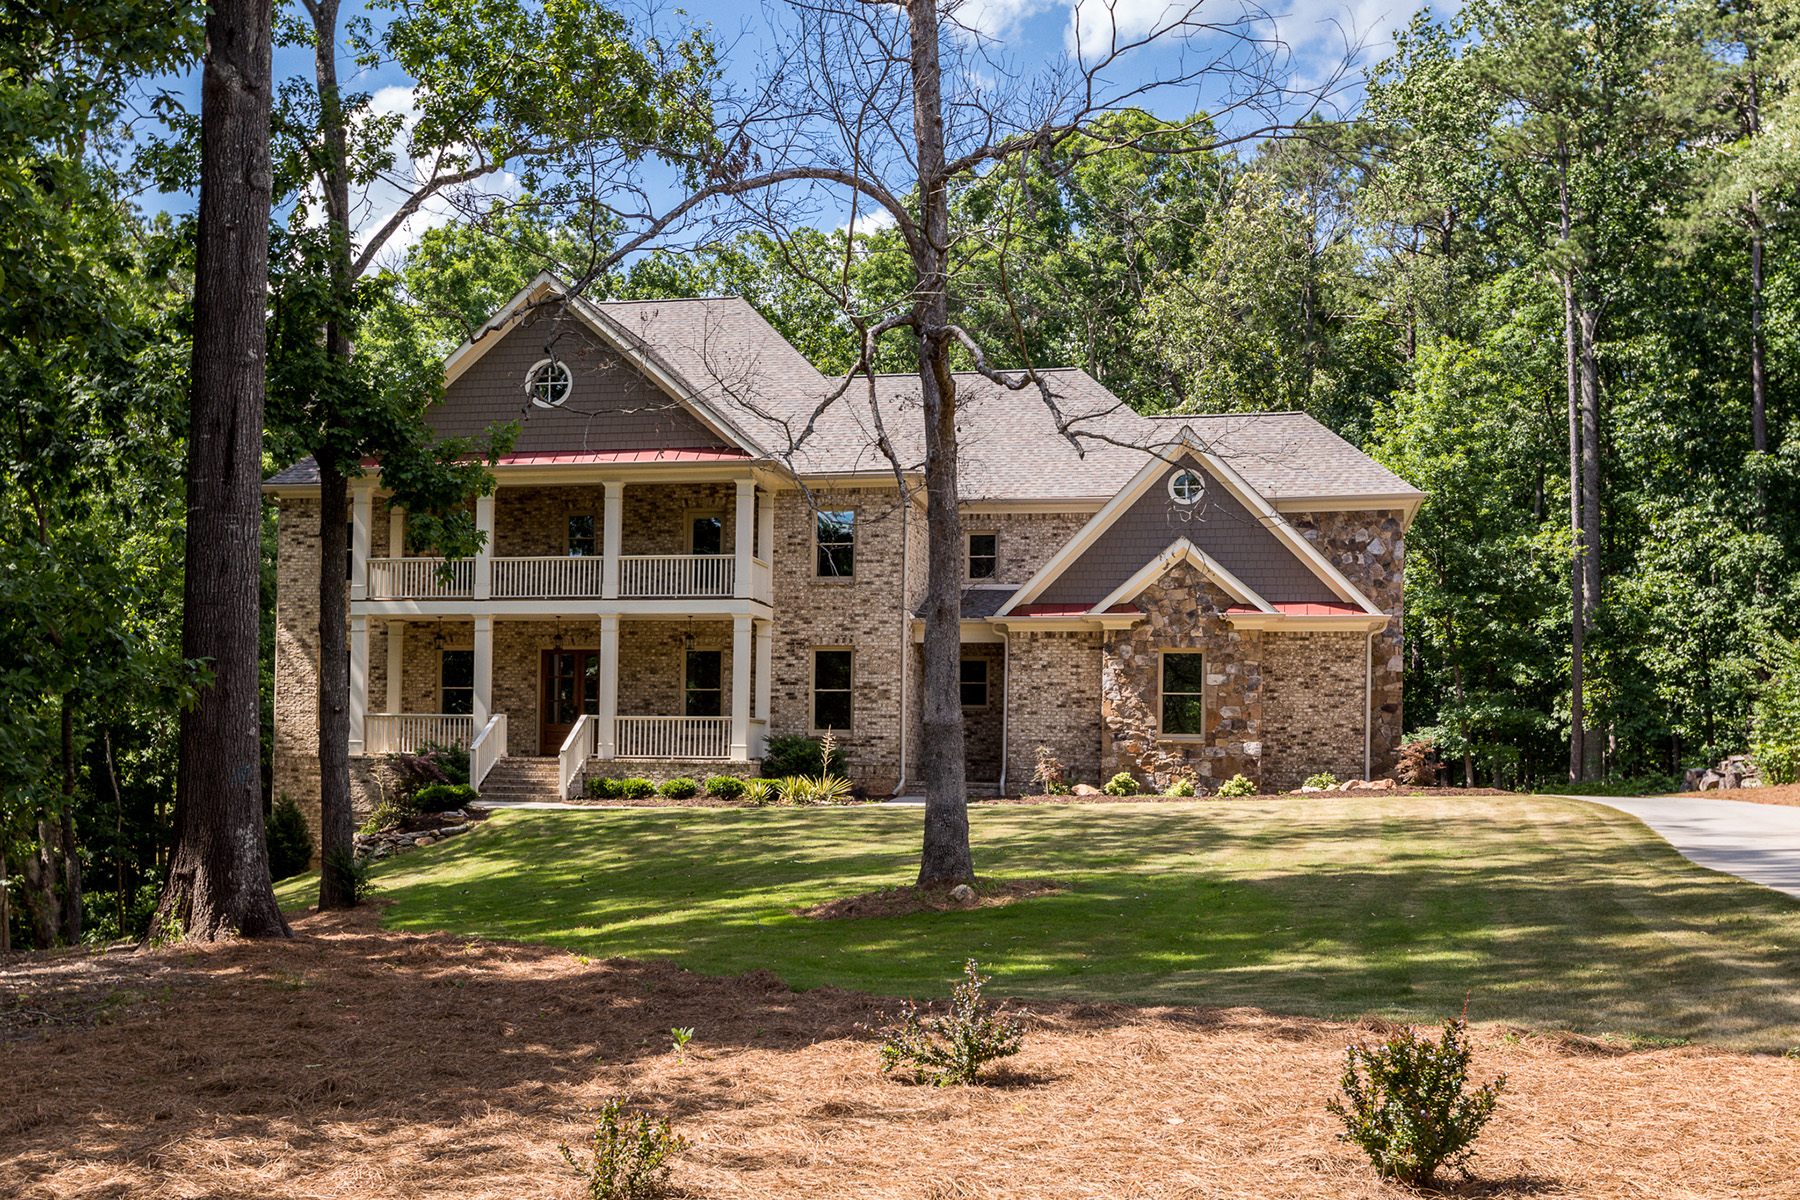 Single Family Homes für Verkauf beim Luxury Living In The Heart Of Roswell On A Two Acre Estate Lot 1025 Jones Road, Roswell, Georgia 30075 Vereinigte Staaten